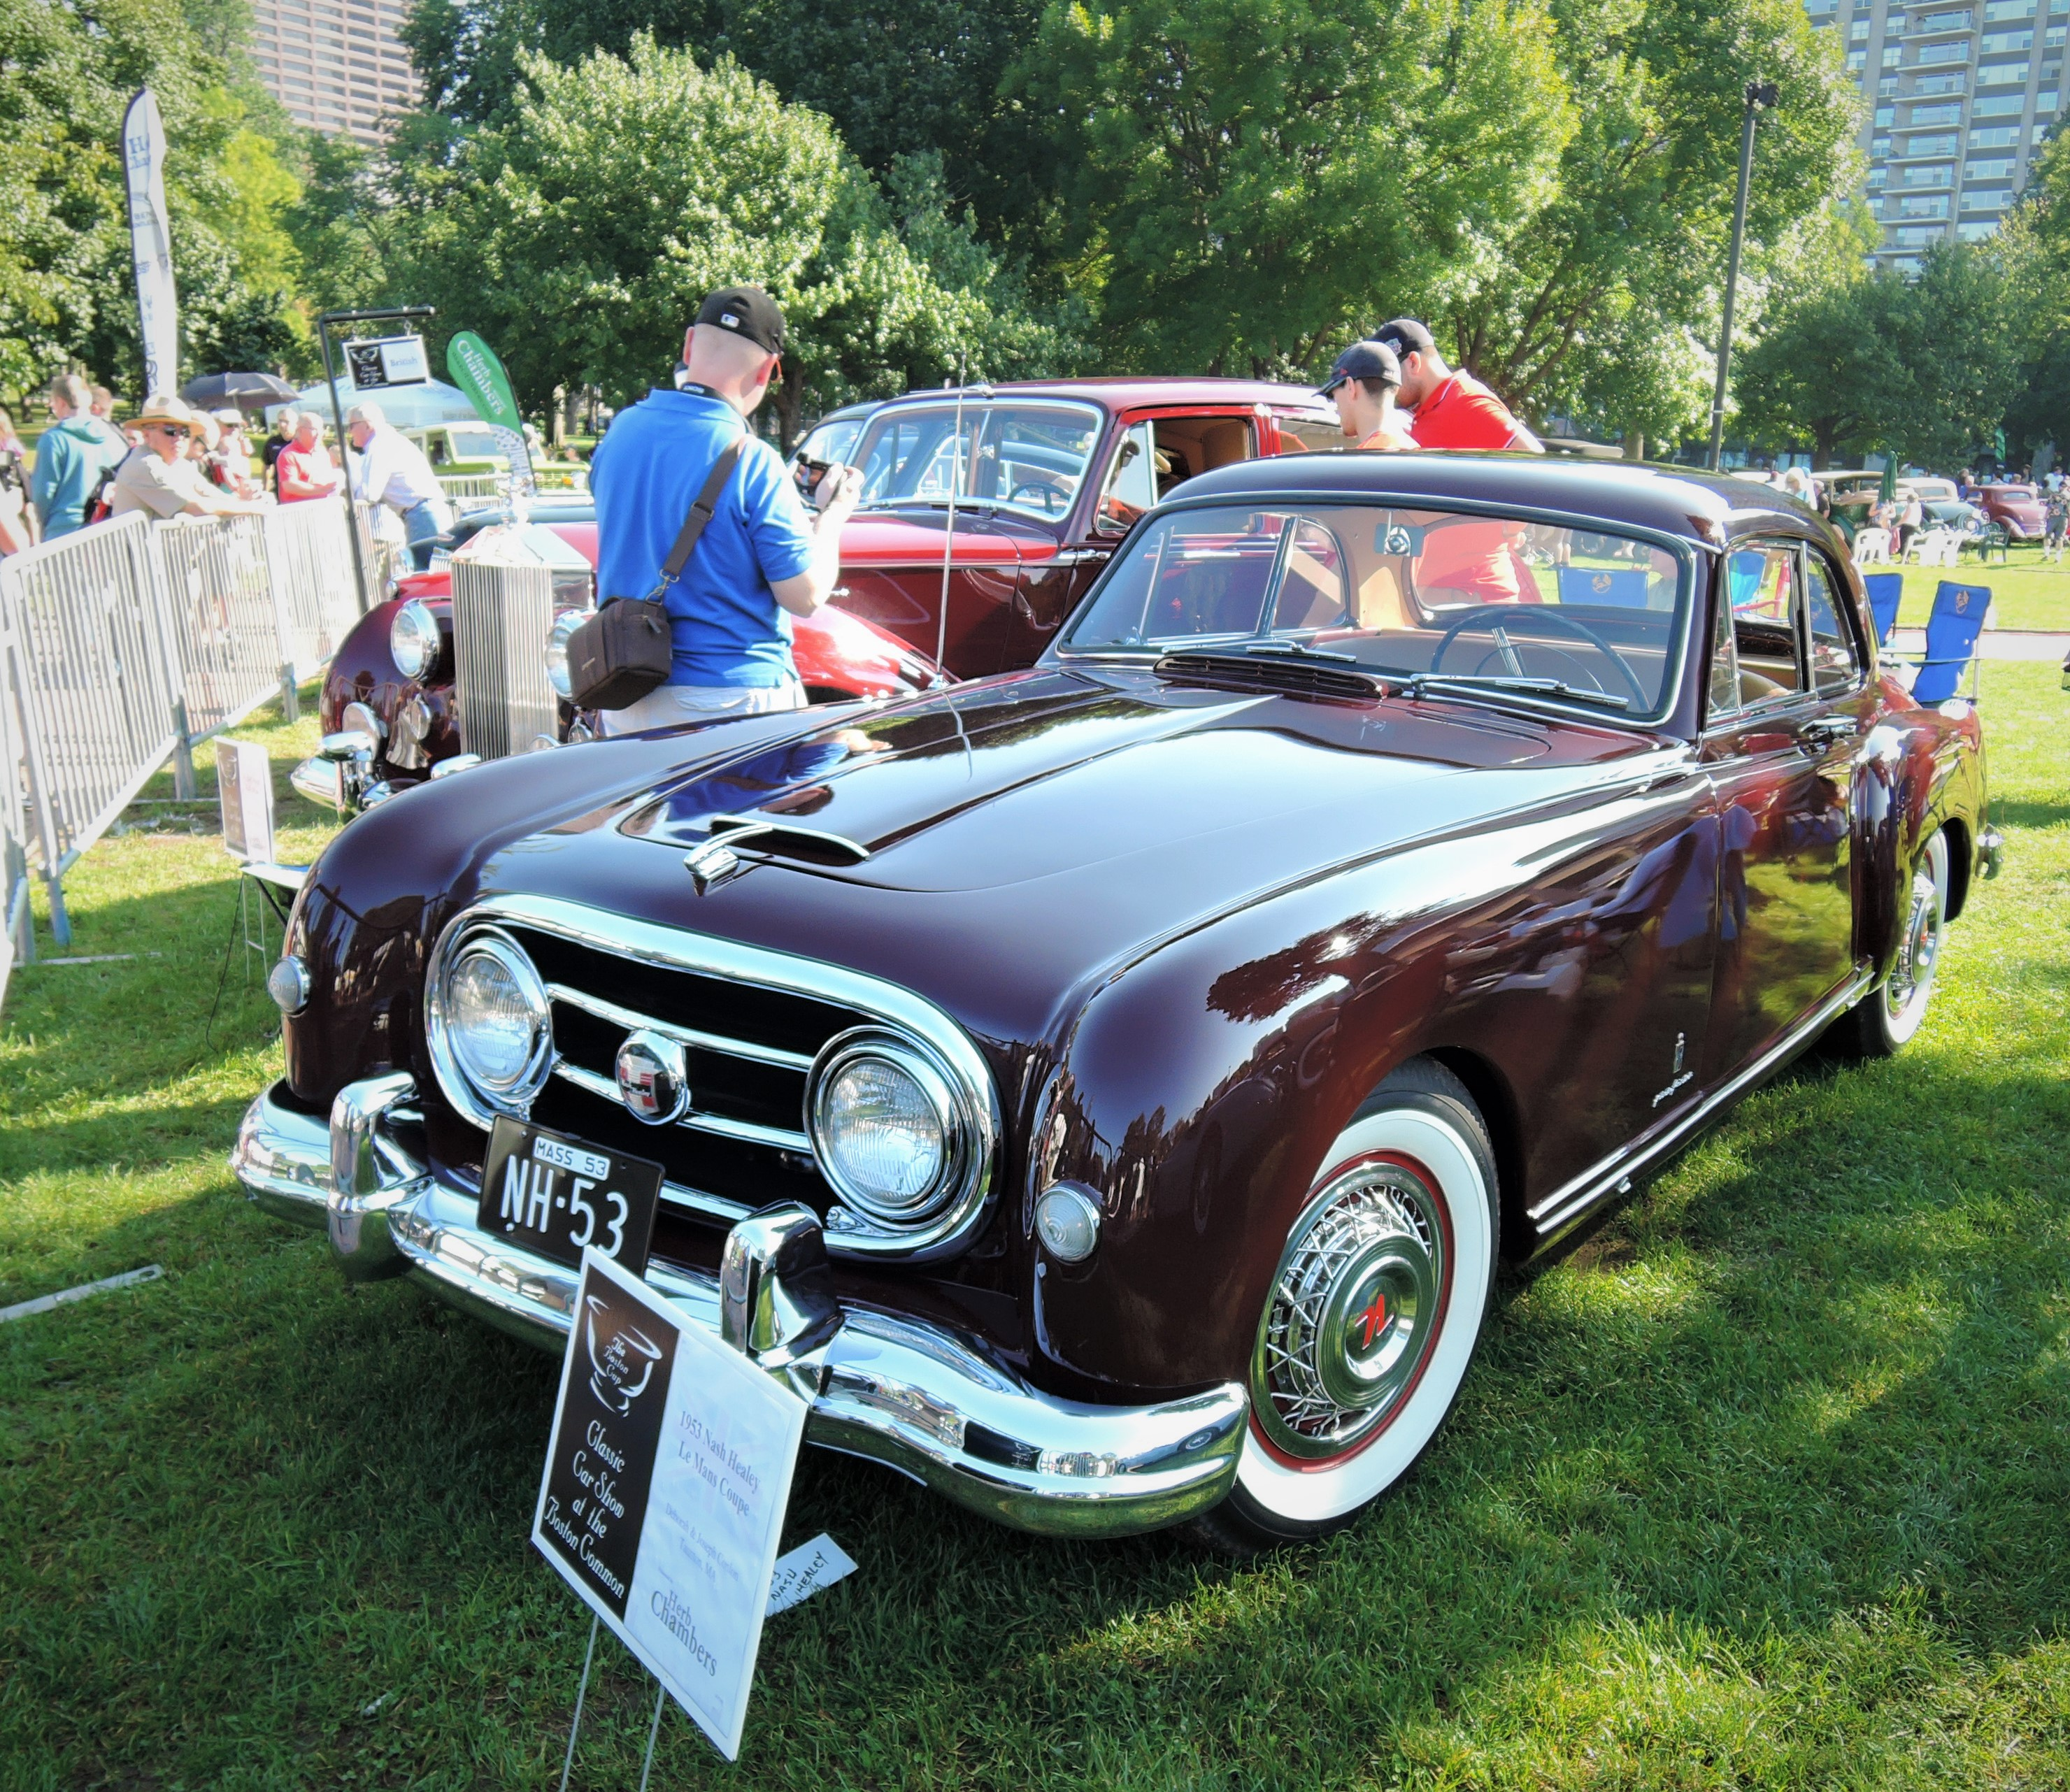 dark red 1953 Nash Healey Le Mans Coupe - The Boston Cup 2017